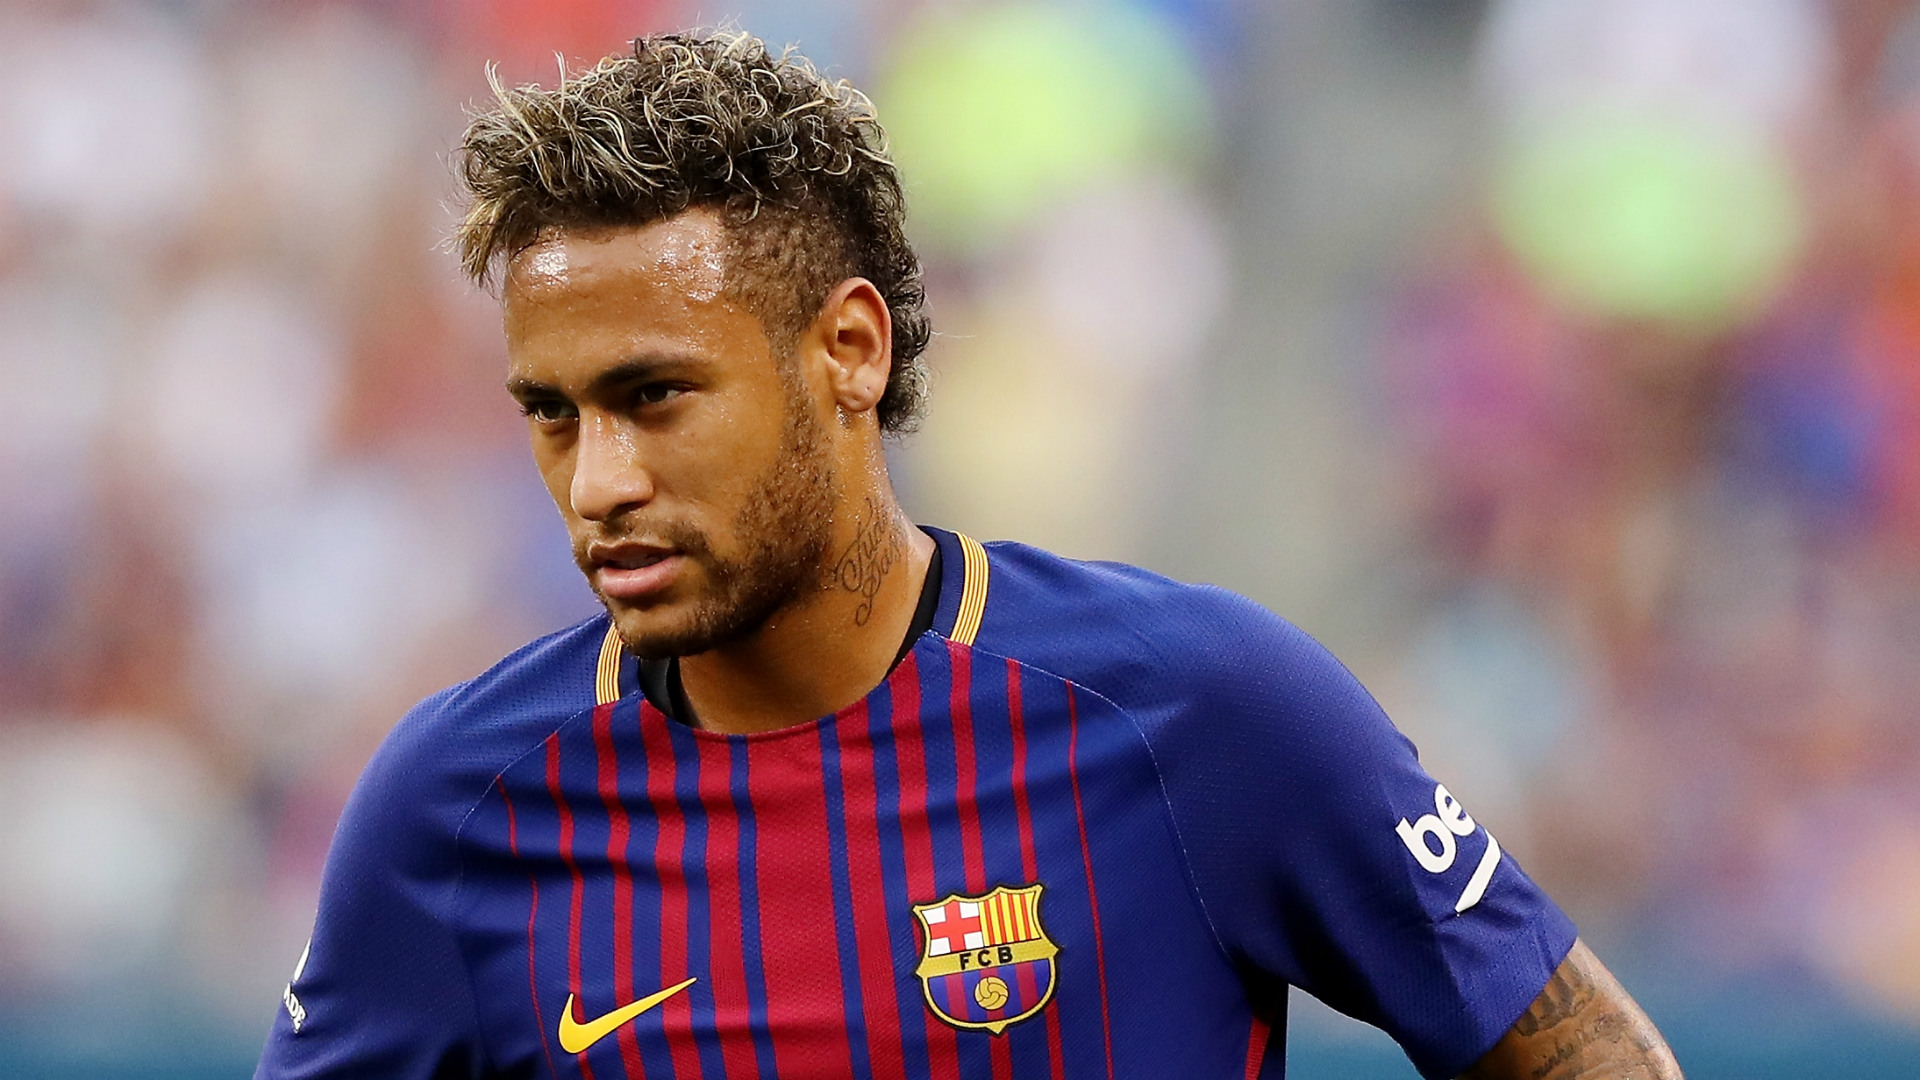 Neymar not travelling for PSG medicals, to fly back to Barcelona